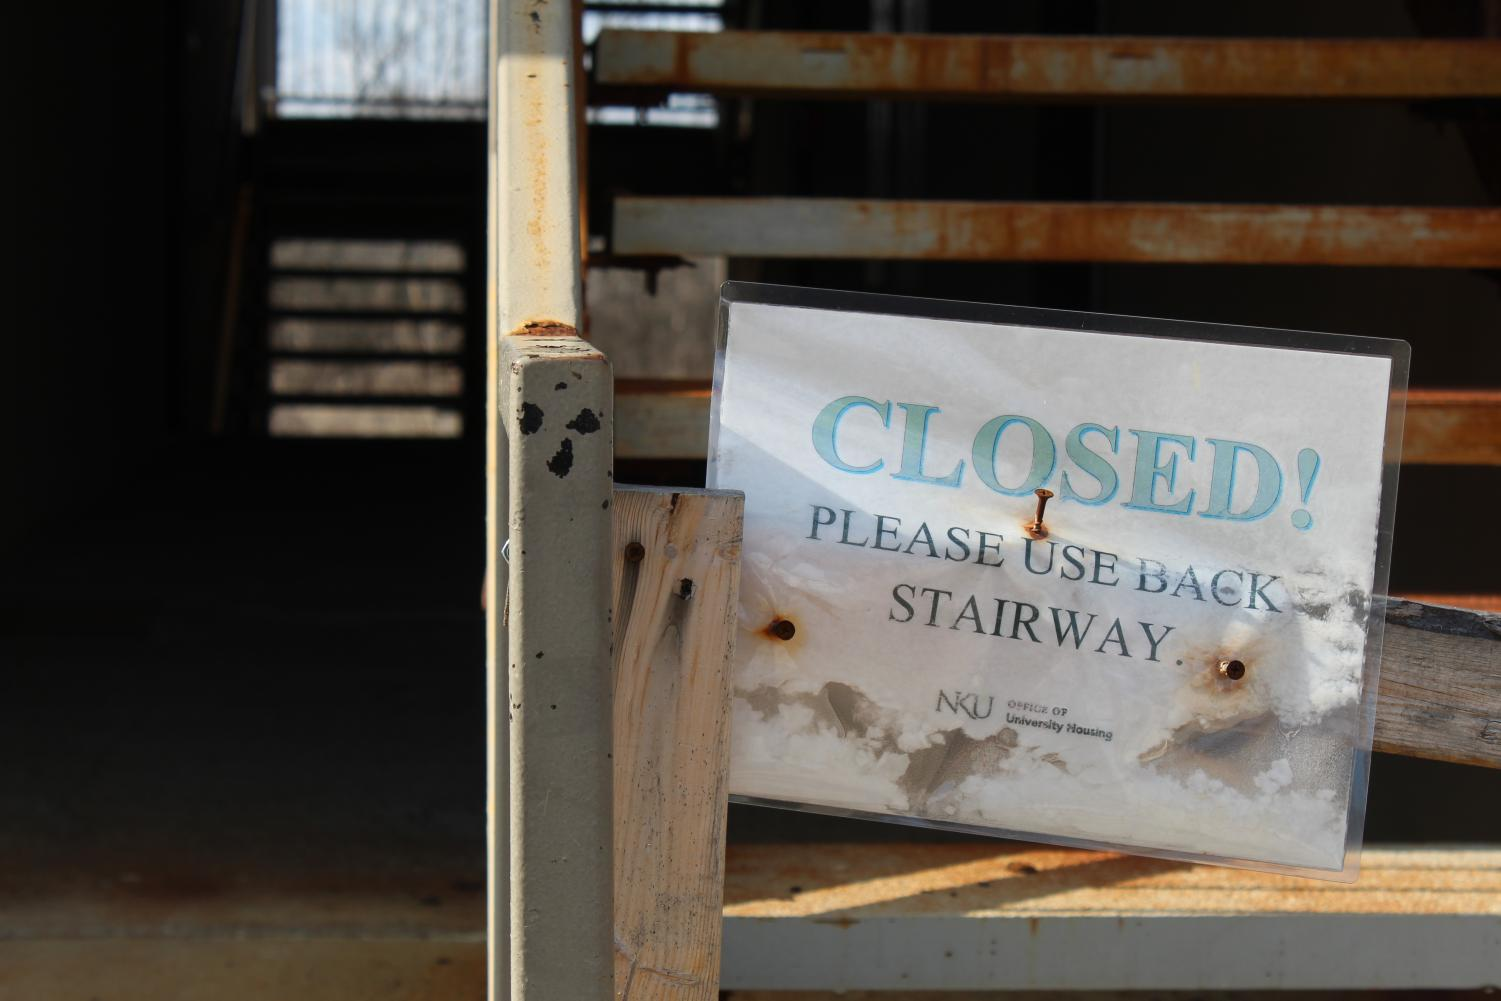 A closed stairway sign on one of the stairways of Sycamore Hall at Woodcrest Apartments.